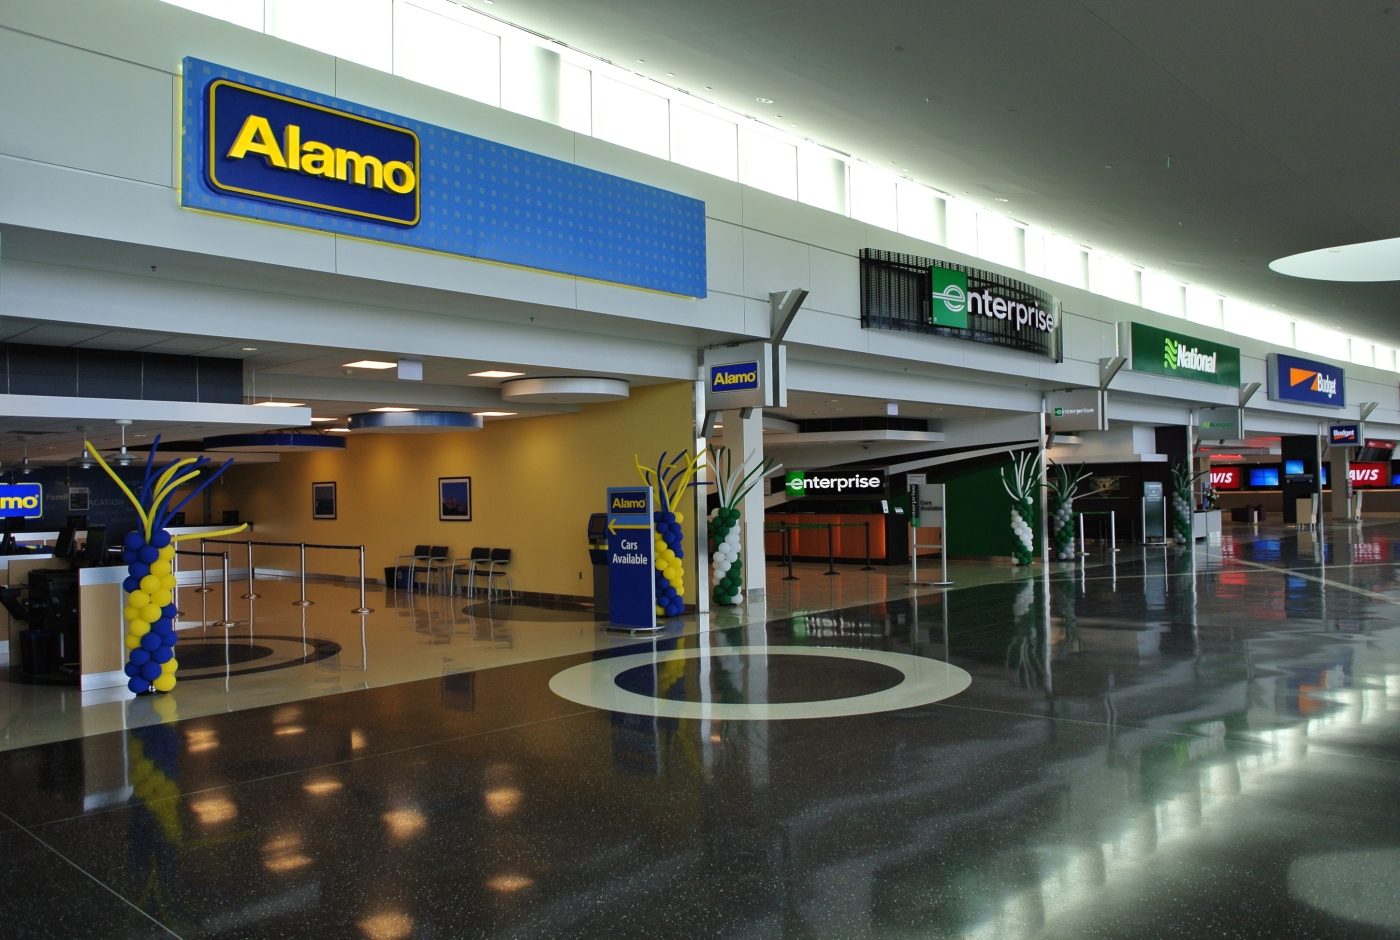 Car hire in orlando airport mco